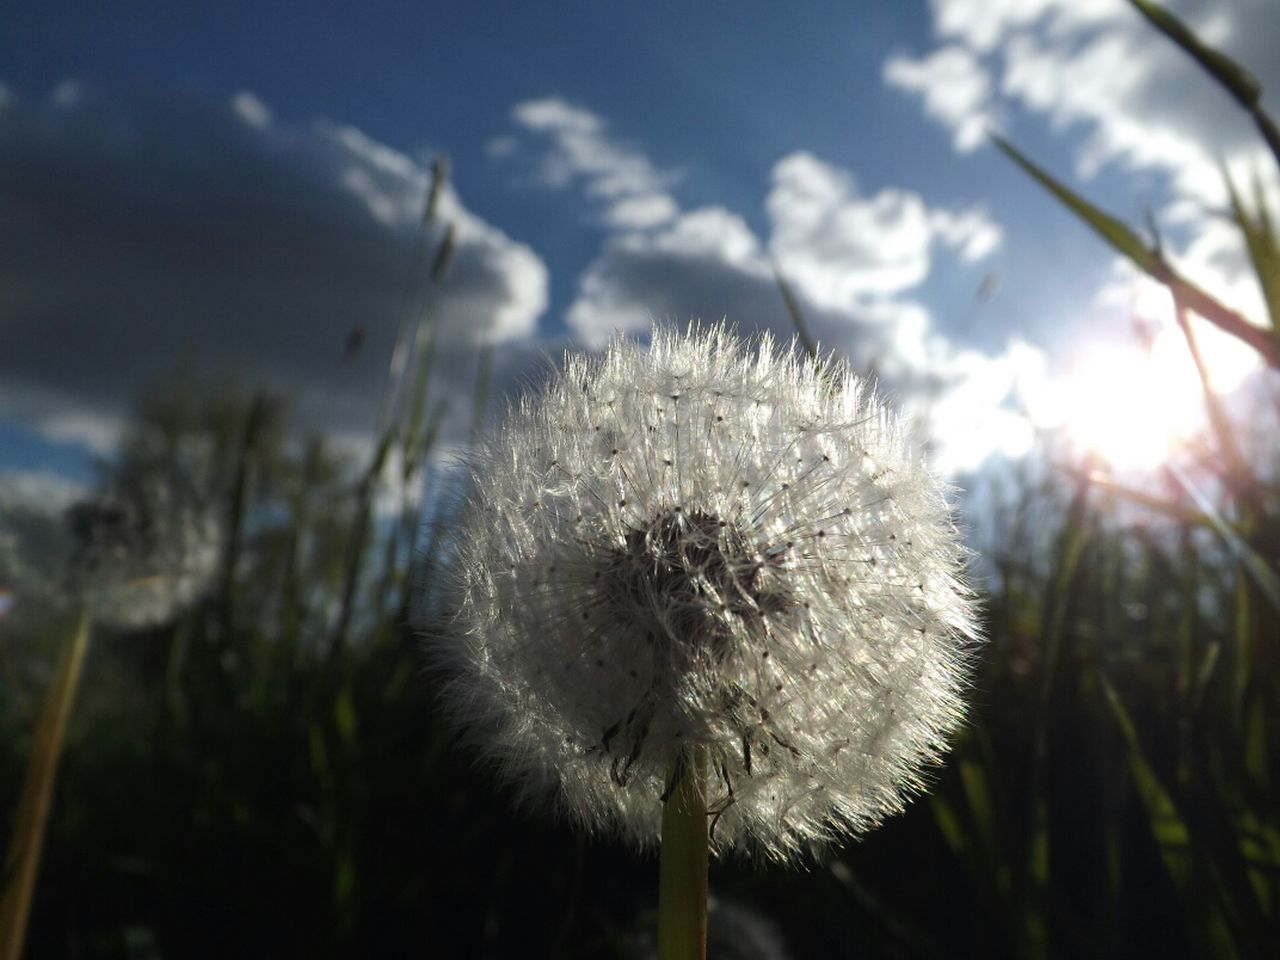 flower, growth, dandelion, nature, fragility, plant, softness, uncultivated, no people, beauty in nature, close-up, outdoors, day, flower head, freshness, sky